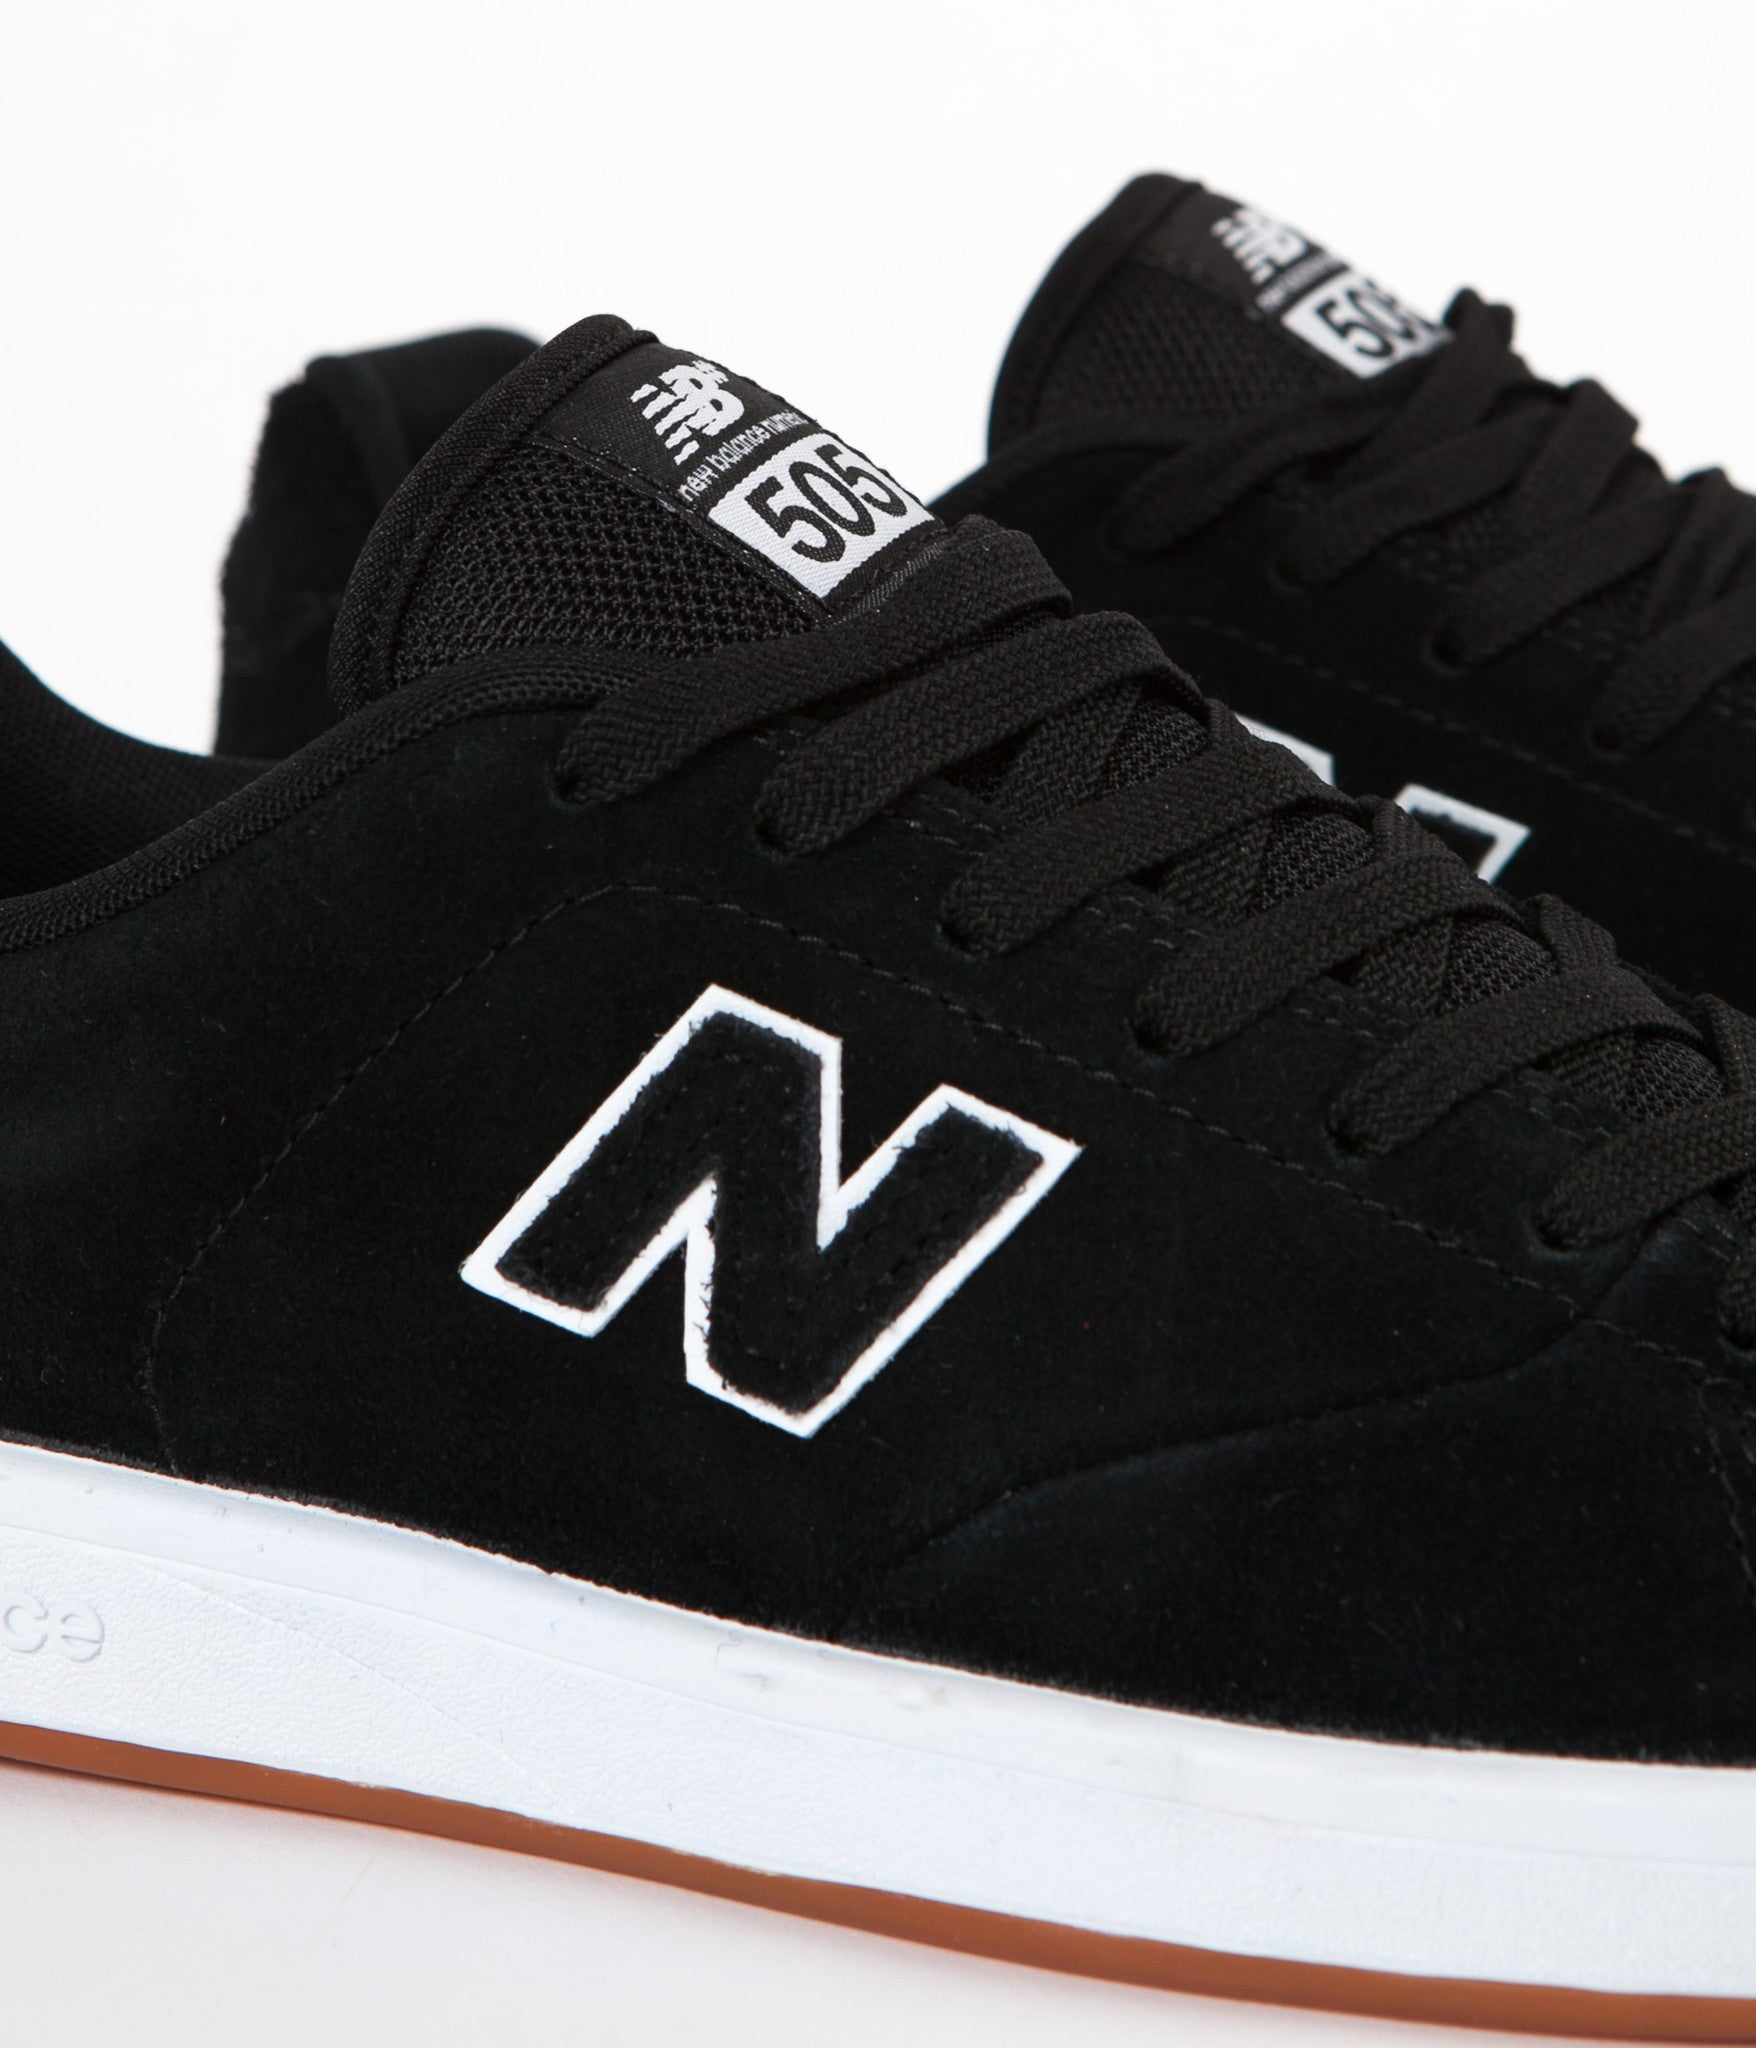 New Balance Numeric 505 Shoes - Black / White